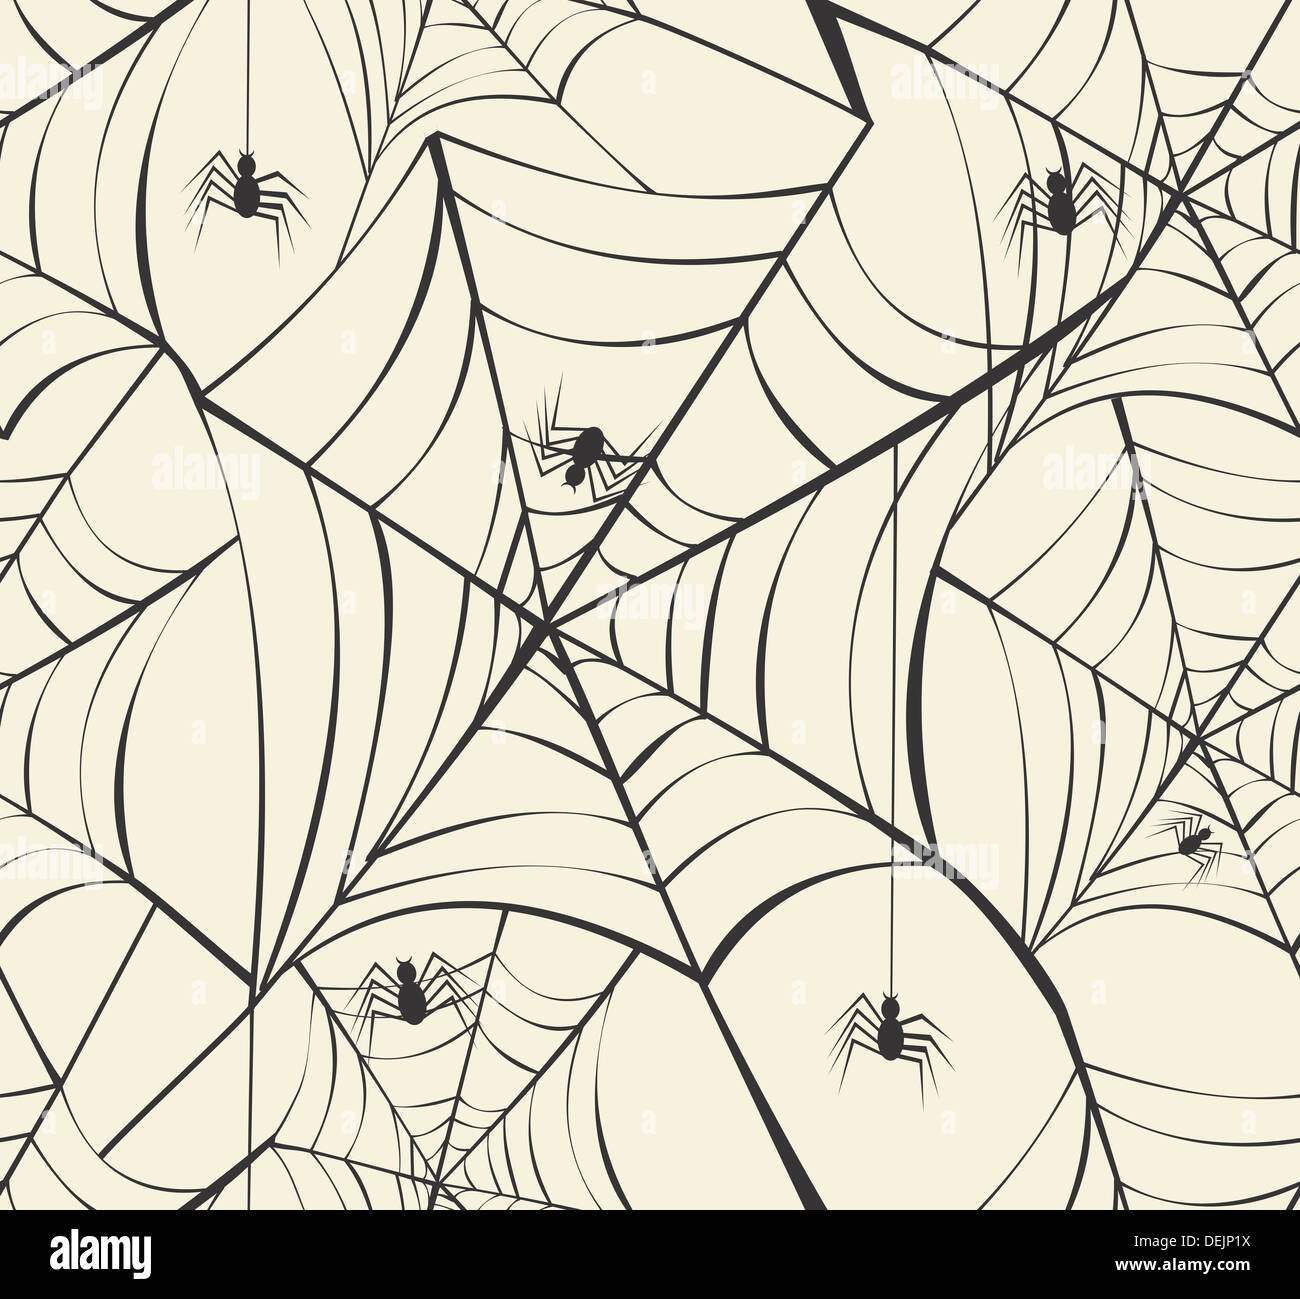 happy halloween spider webs seamless pattern background eps10 vector file organized in layers for easy editing